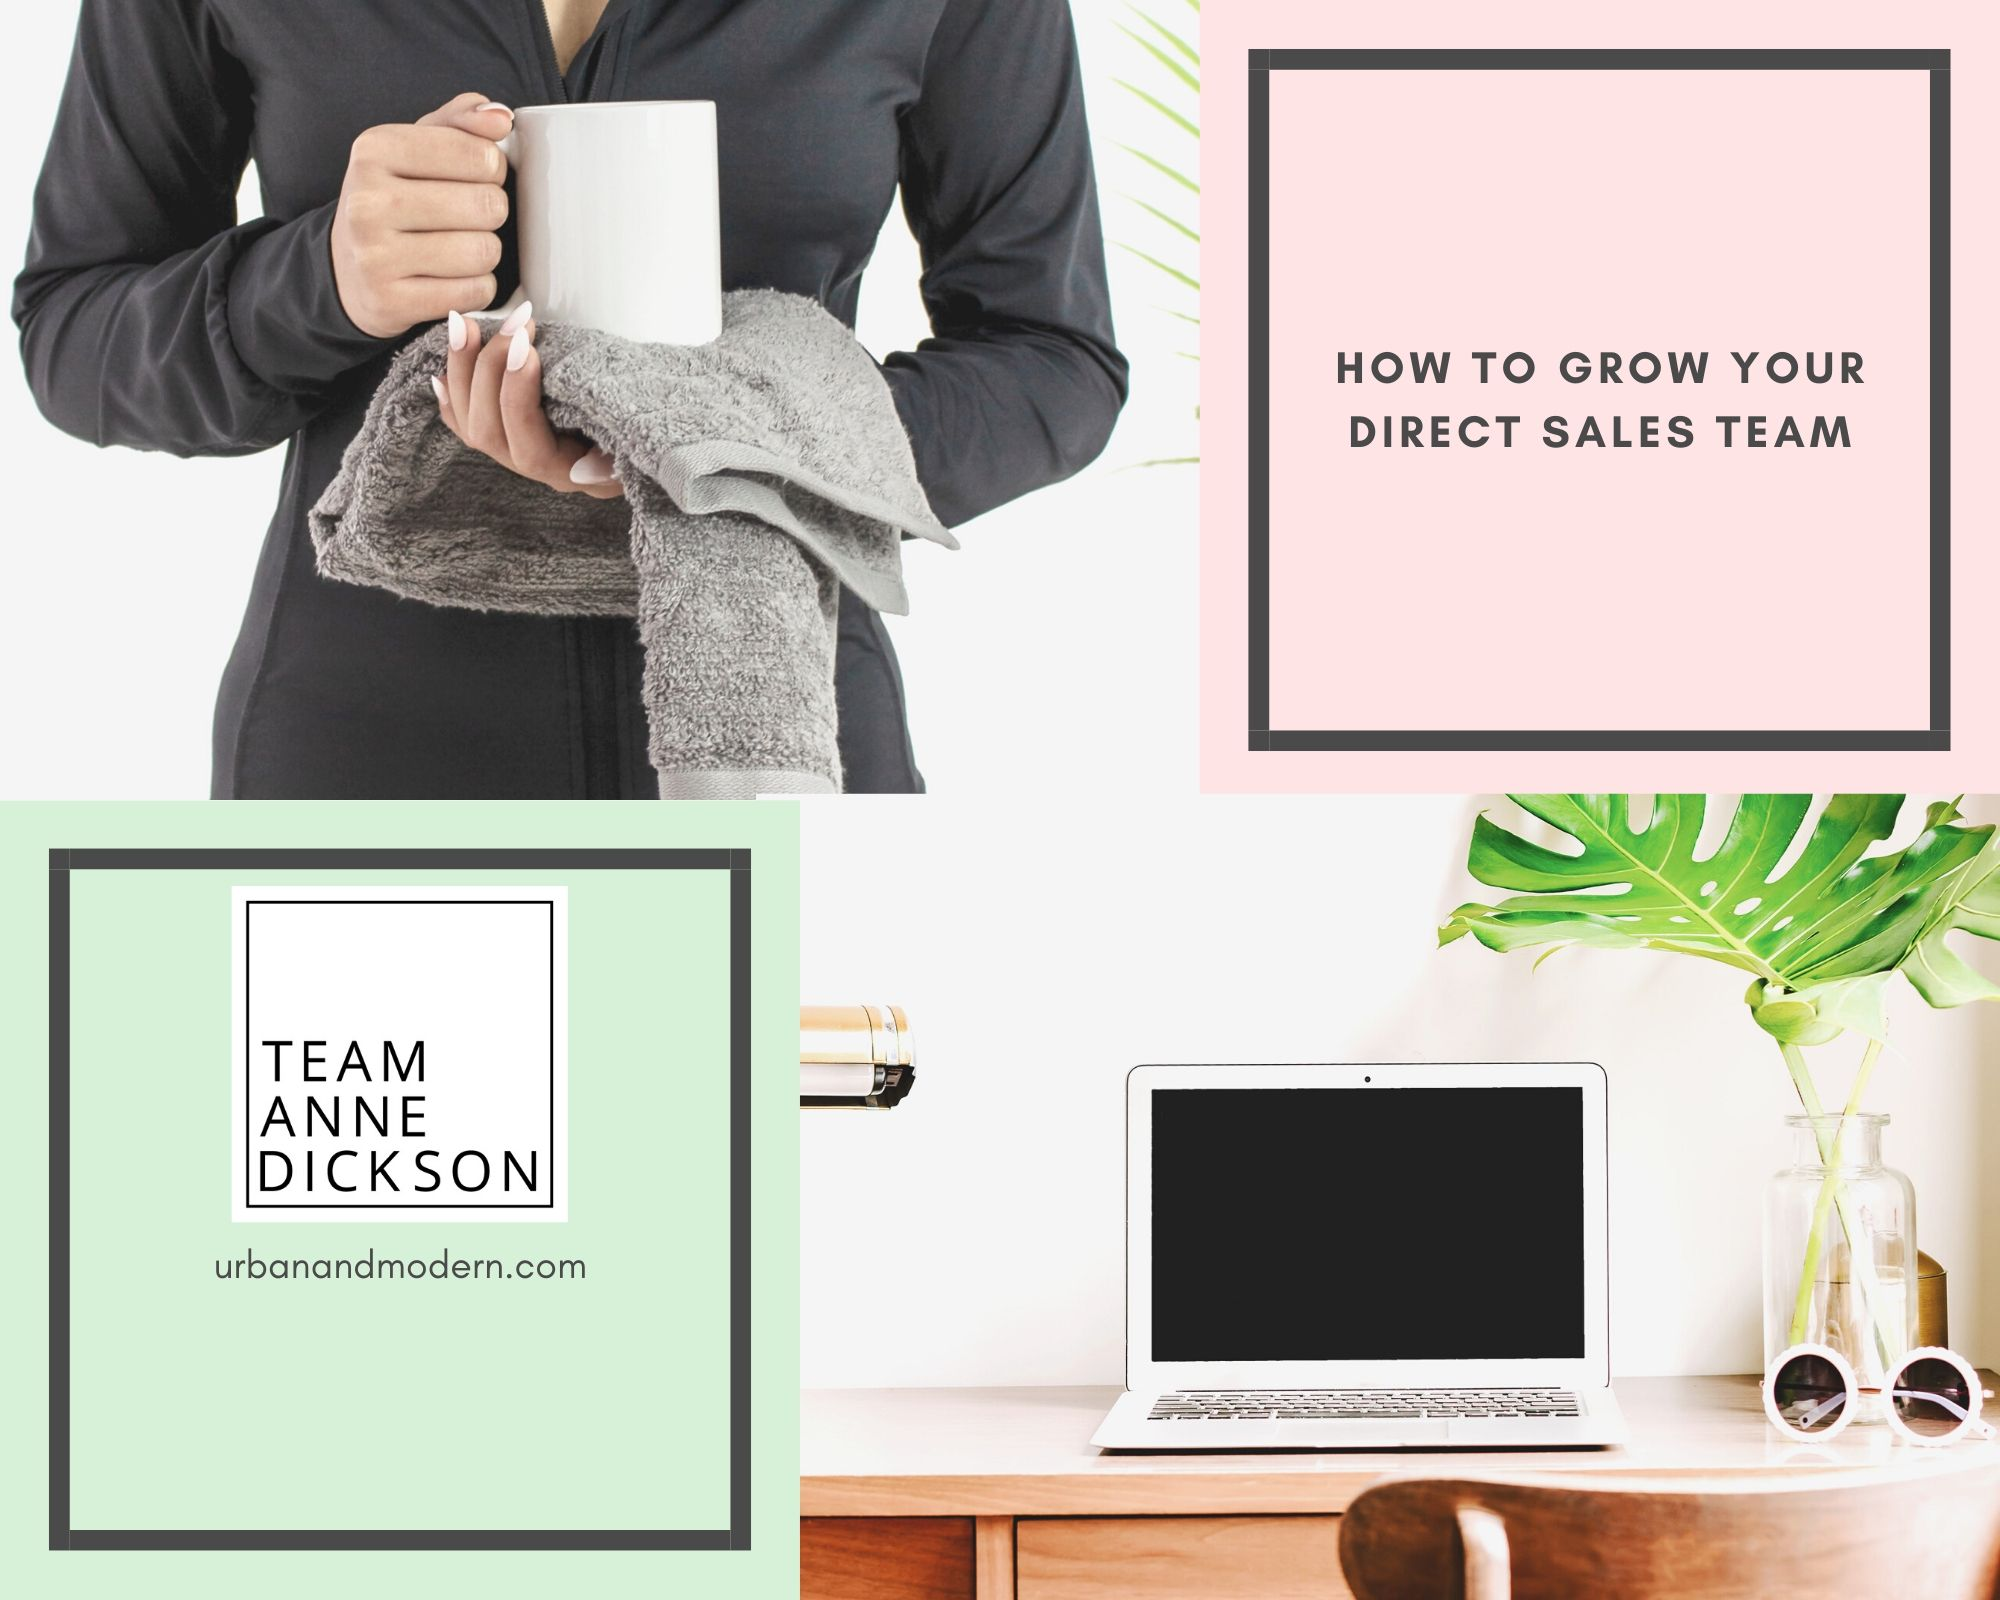 How to grow your Direct Sales Team